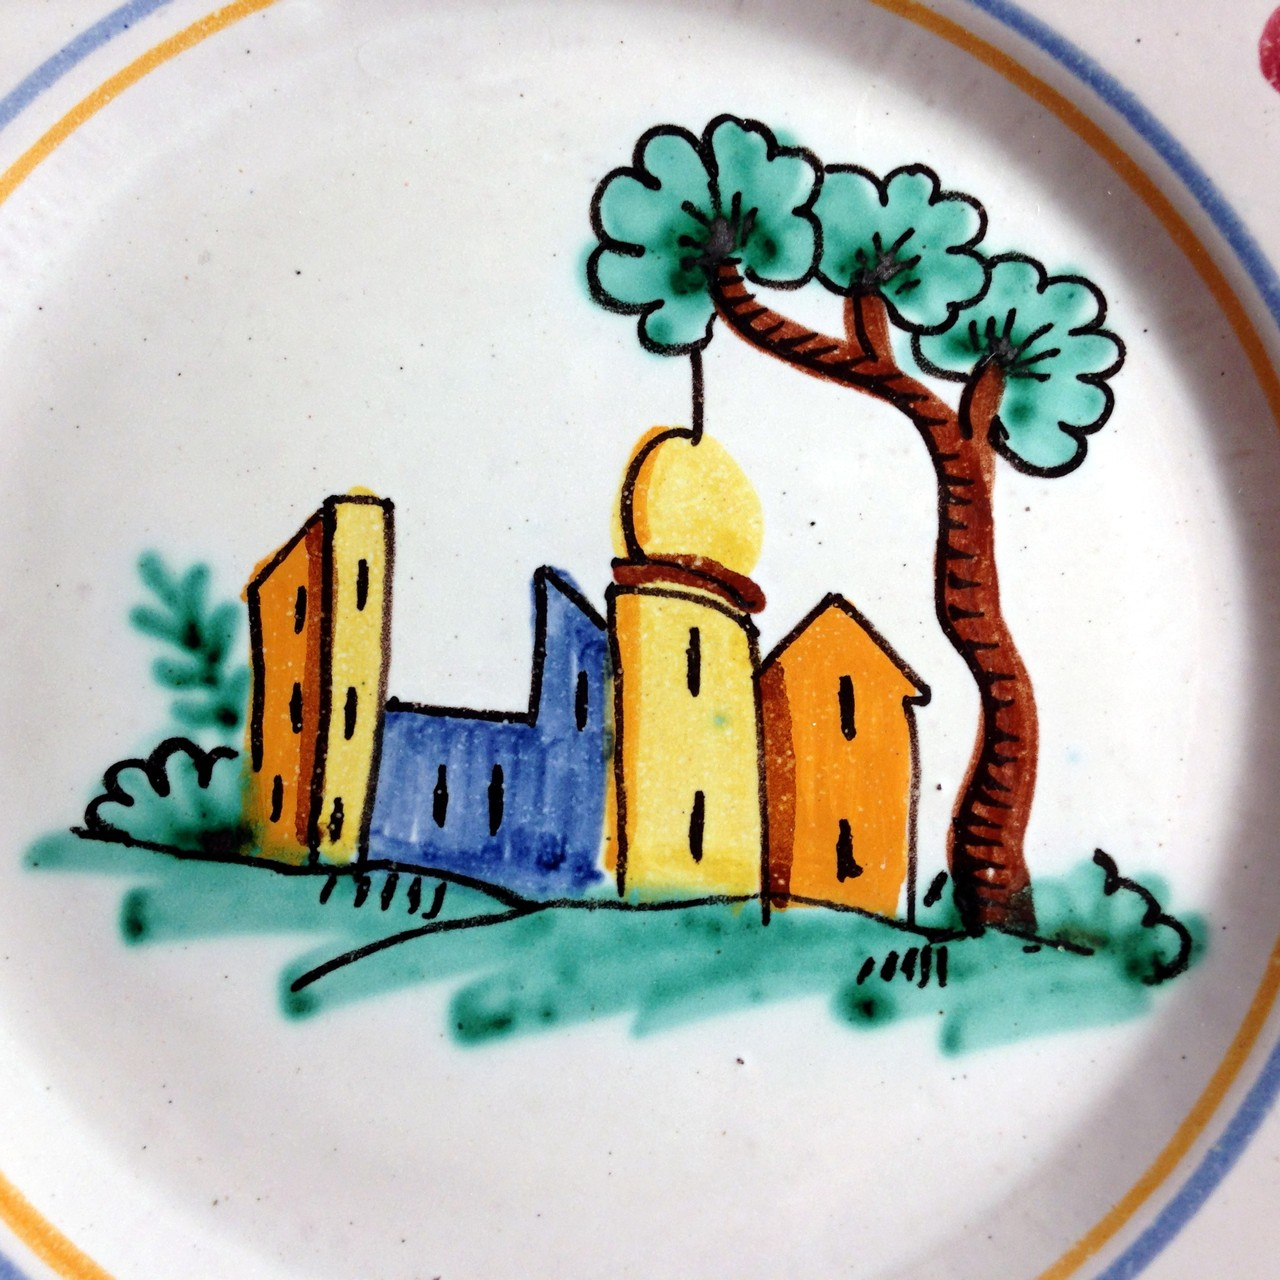 Hand Painted in Italy Italian Village Plate with Dots Edge www.DecorativeDishes.net